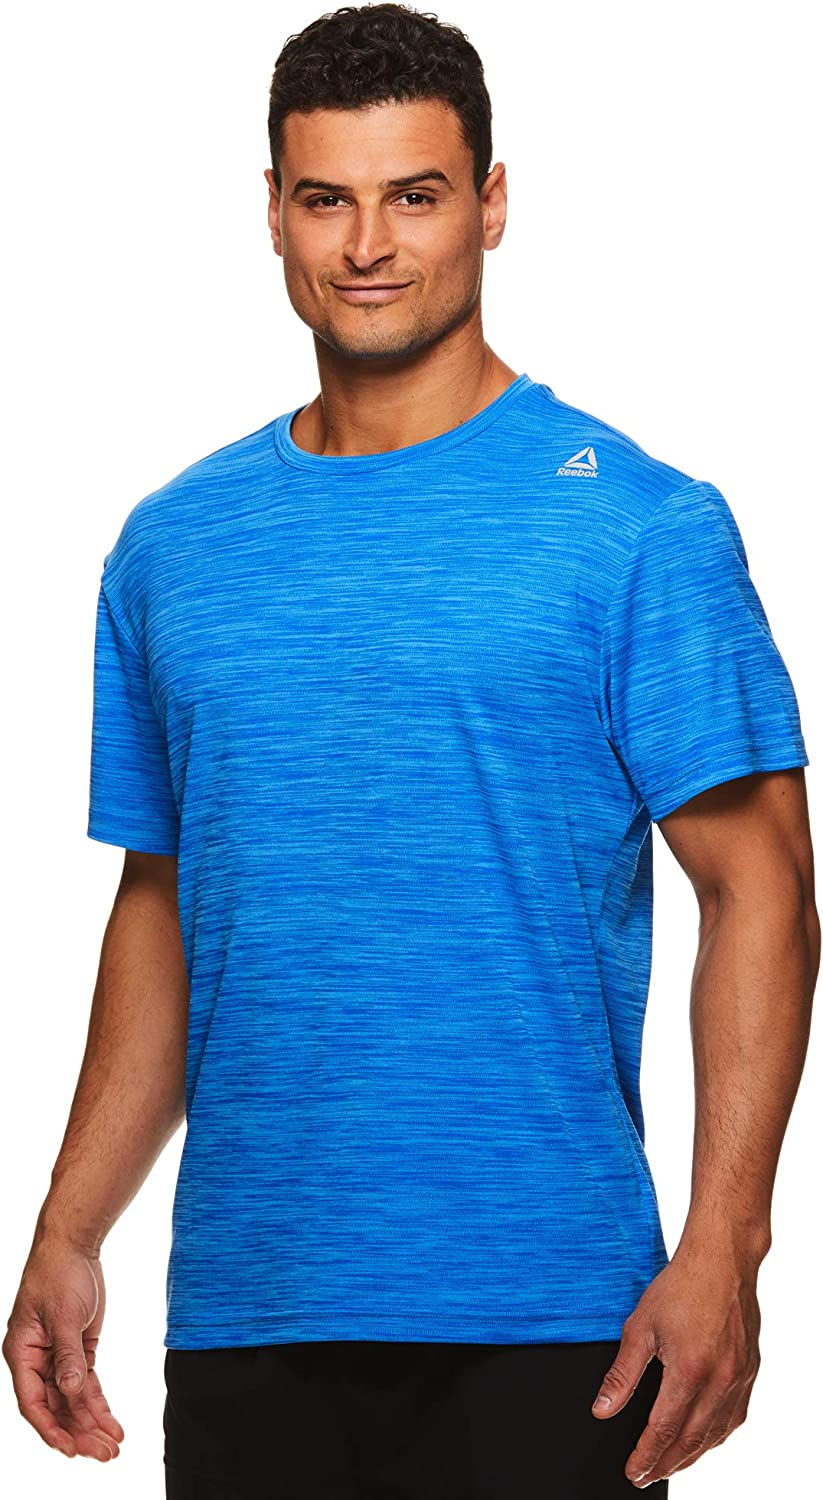 Reebok Men's Supersonic Crewneck Workout TShirt Designed with Performance Material